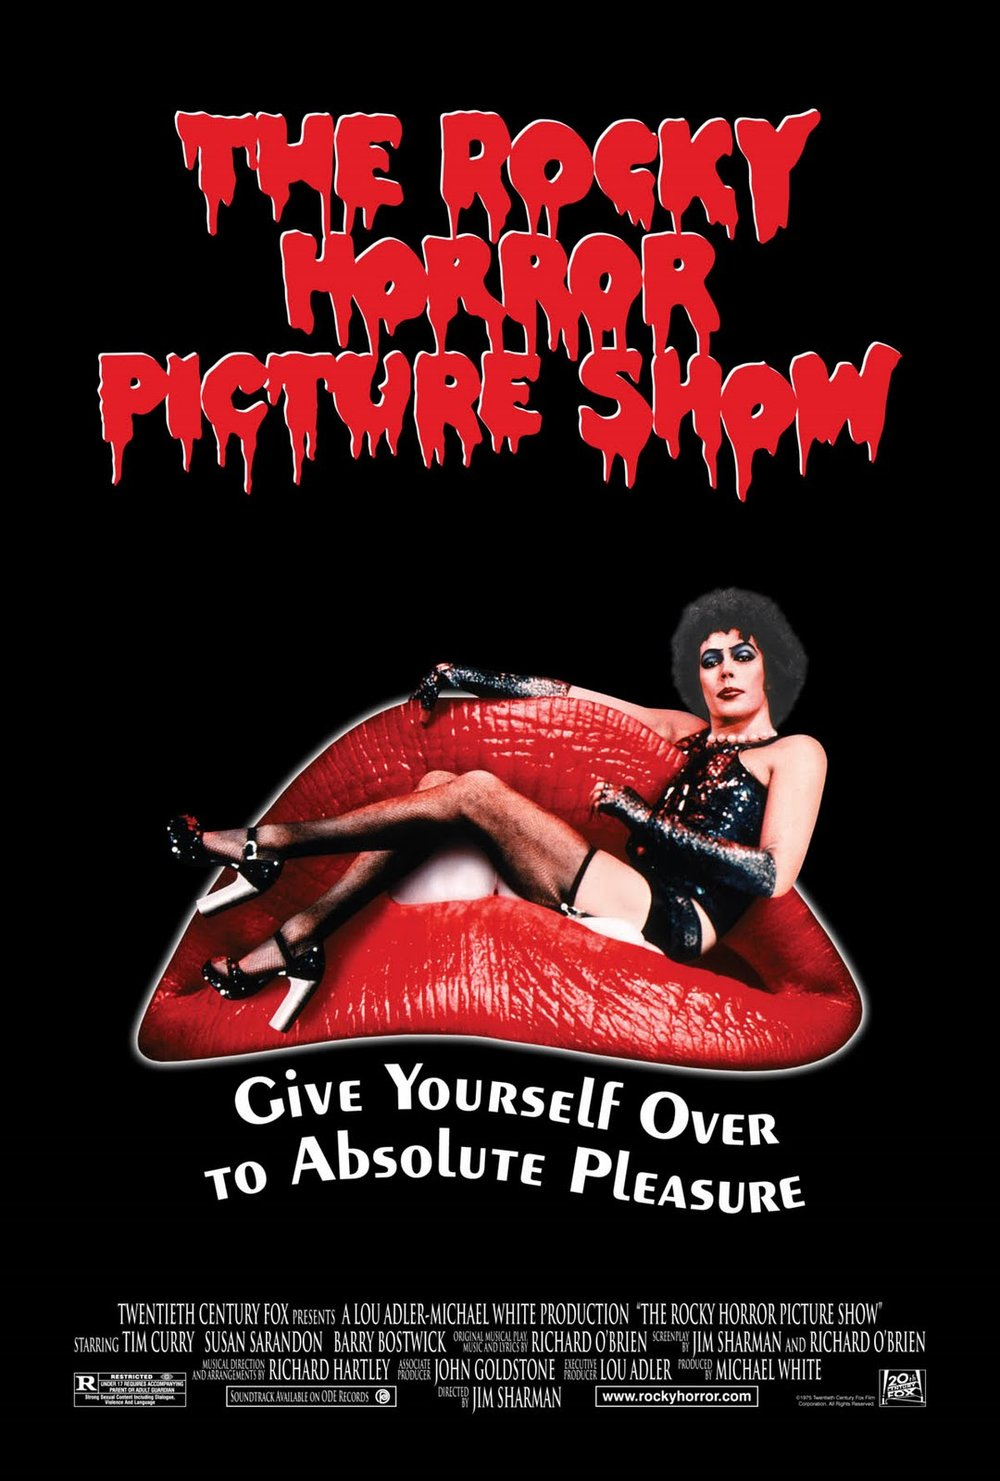 The Rocky Horror Picture Show Poster.jpg